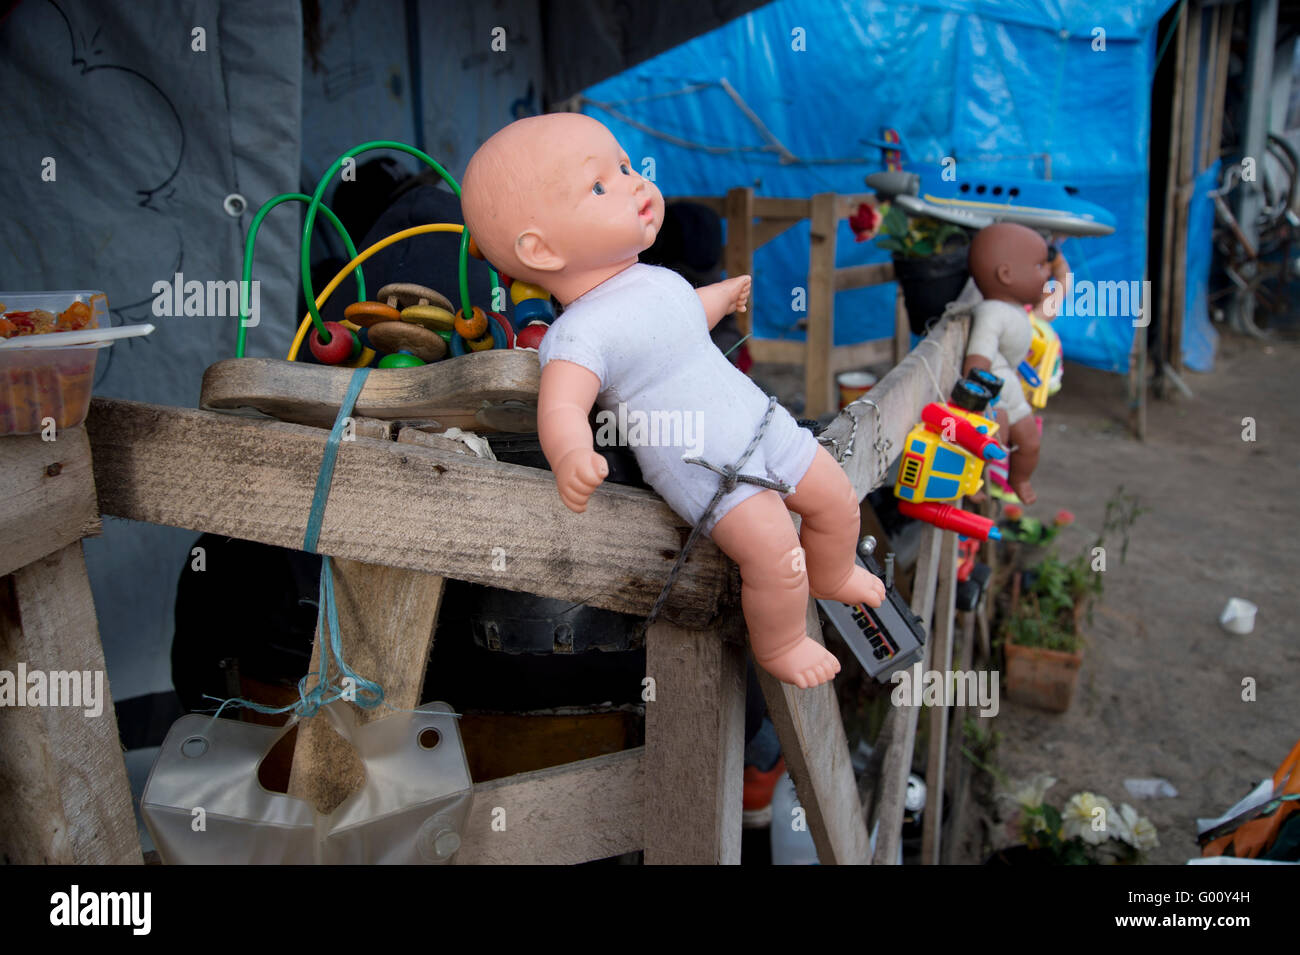 France, Calais. 'Jungle' camp for refugees. Some Sudanese have decorated their shelter with children's - Stock Image